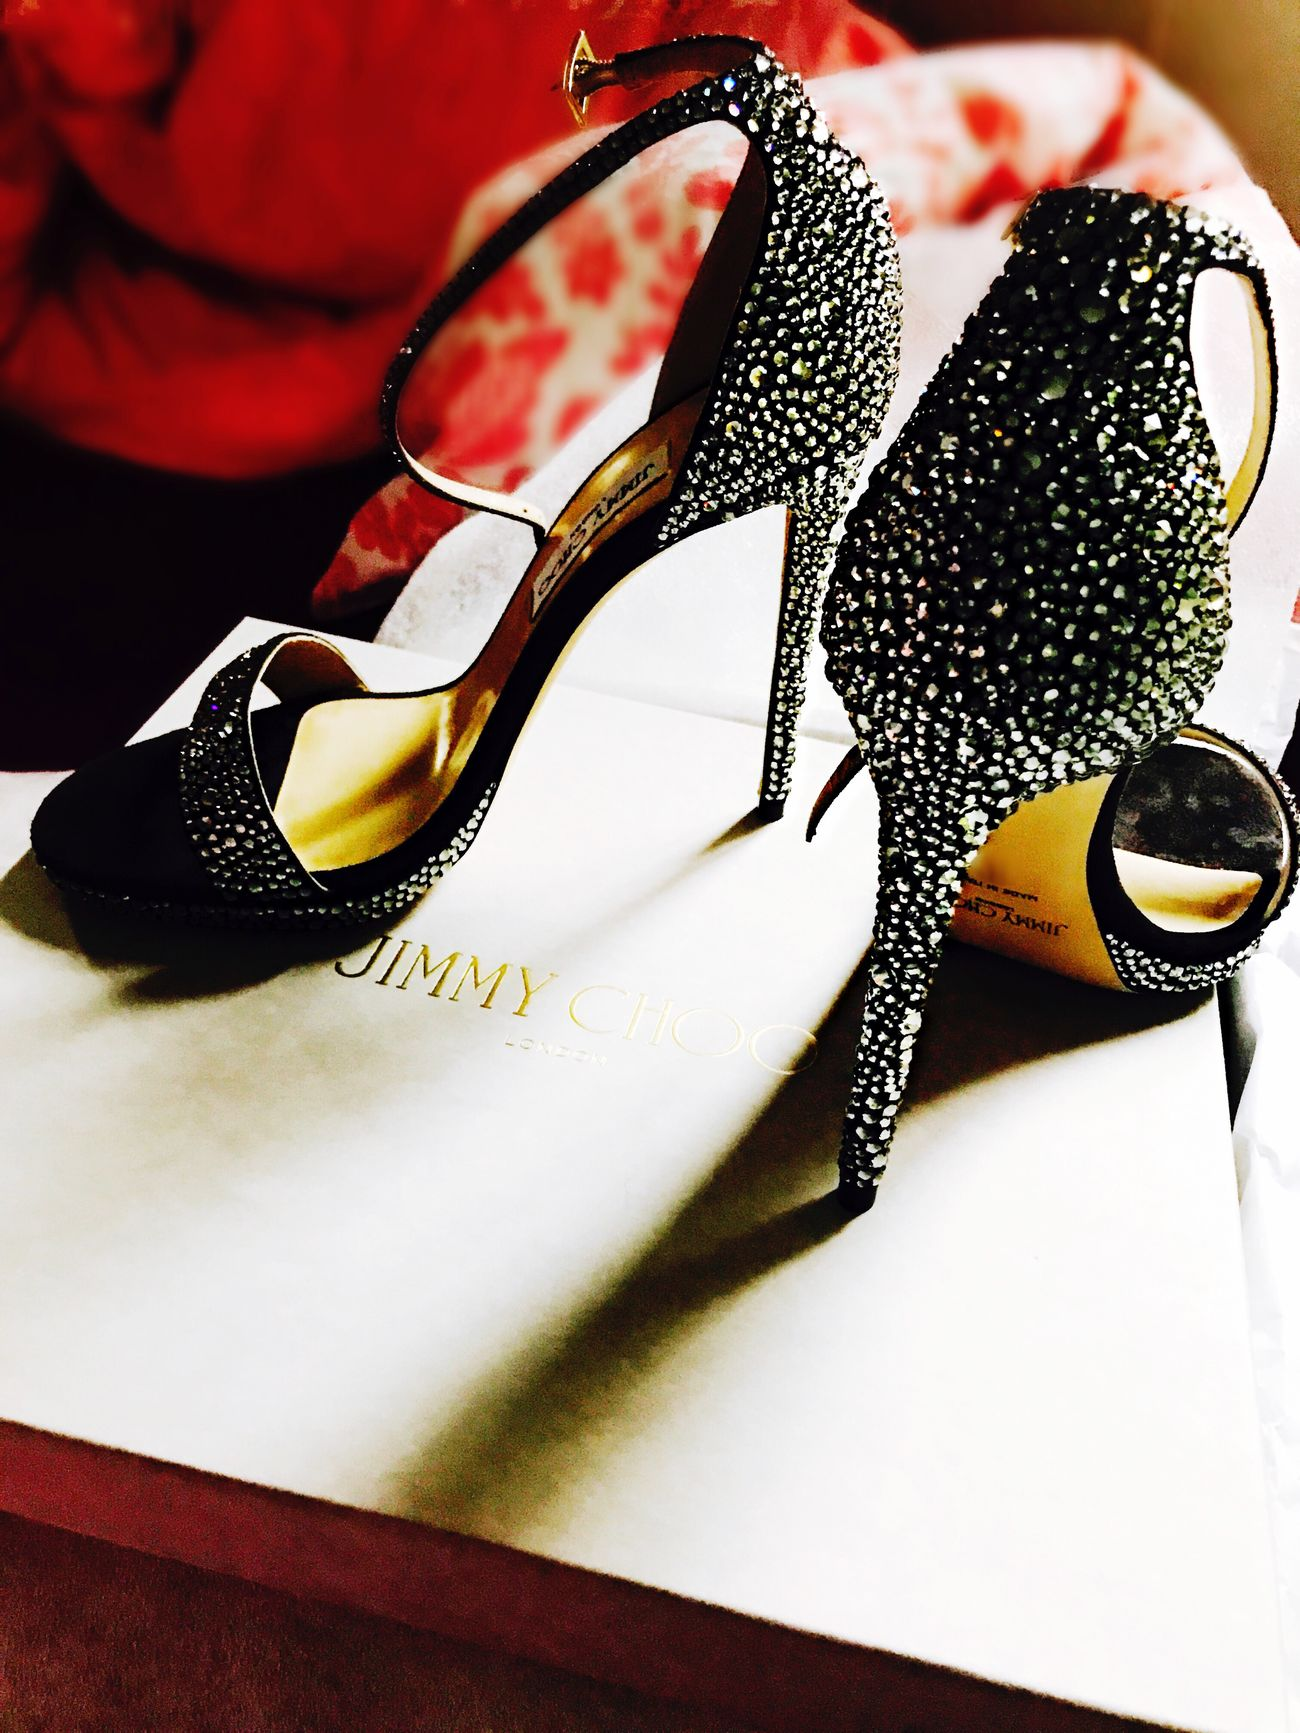 Love Shoes Shoes ♥ Jimmychoo Addicted Addmeoninstagram Picoftheday